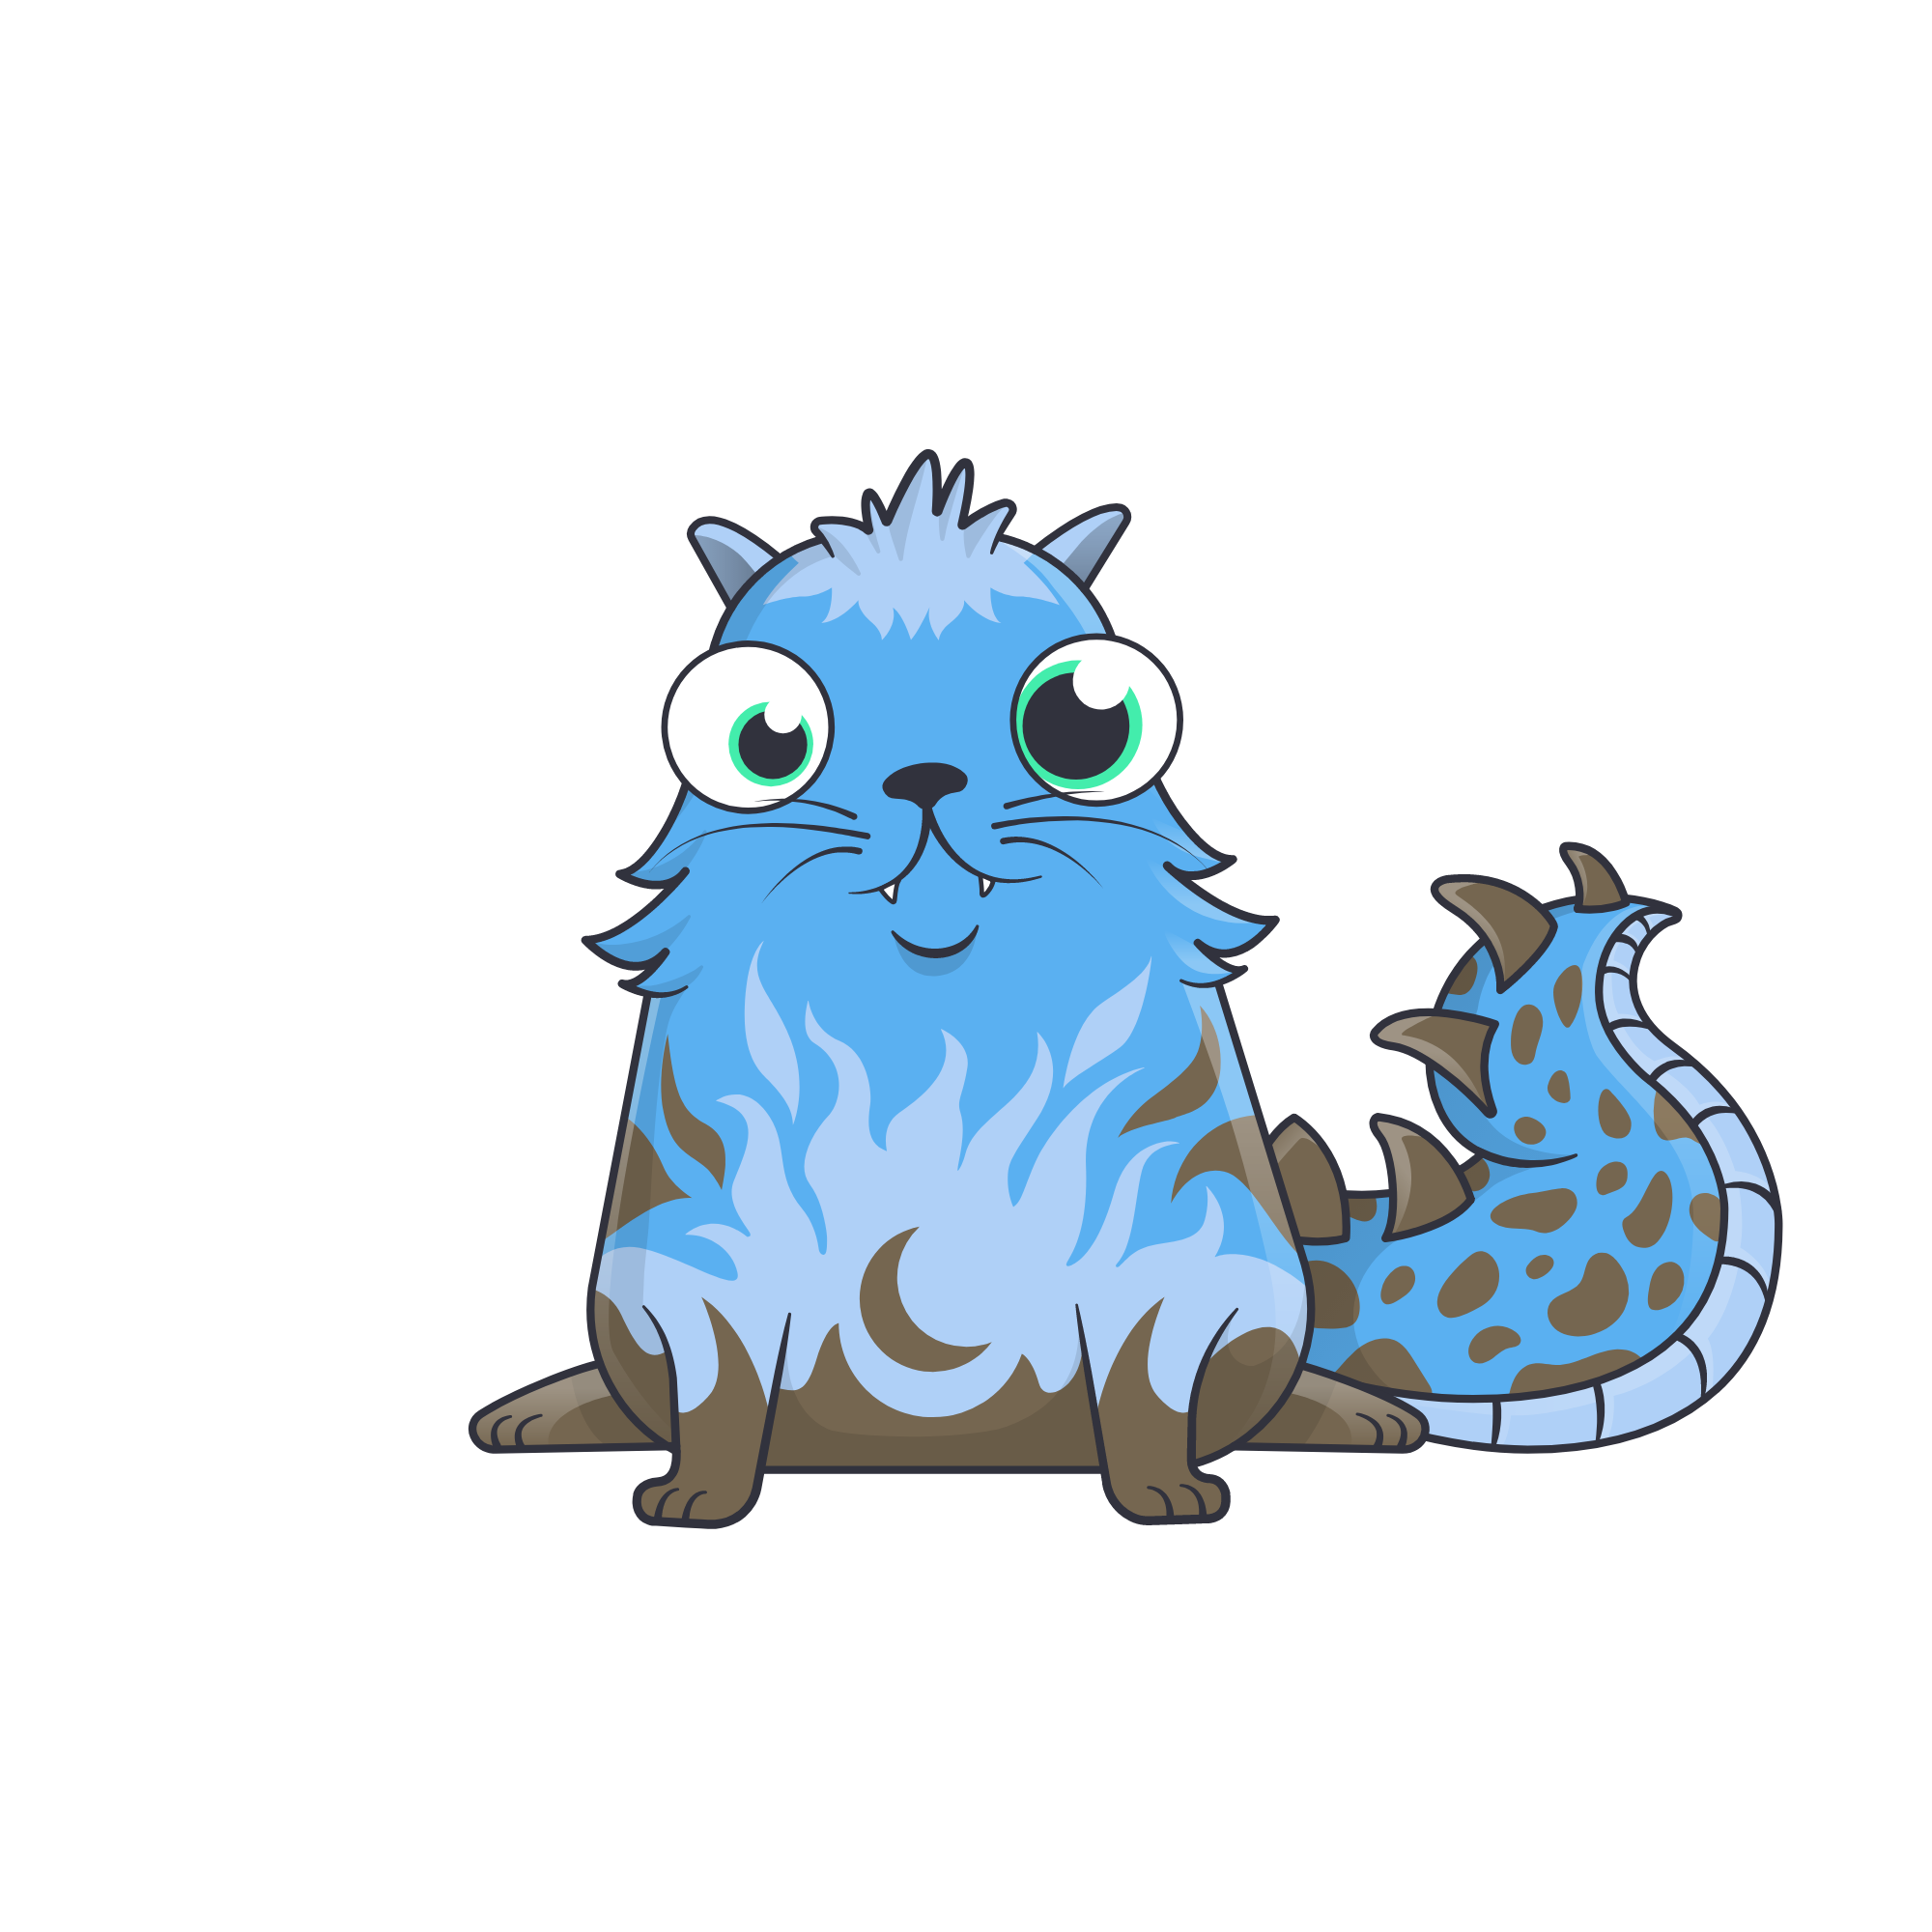 cryptokitty #1622490